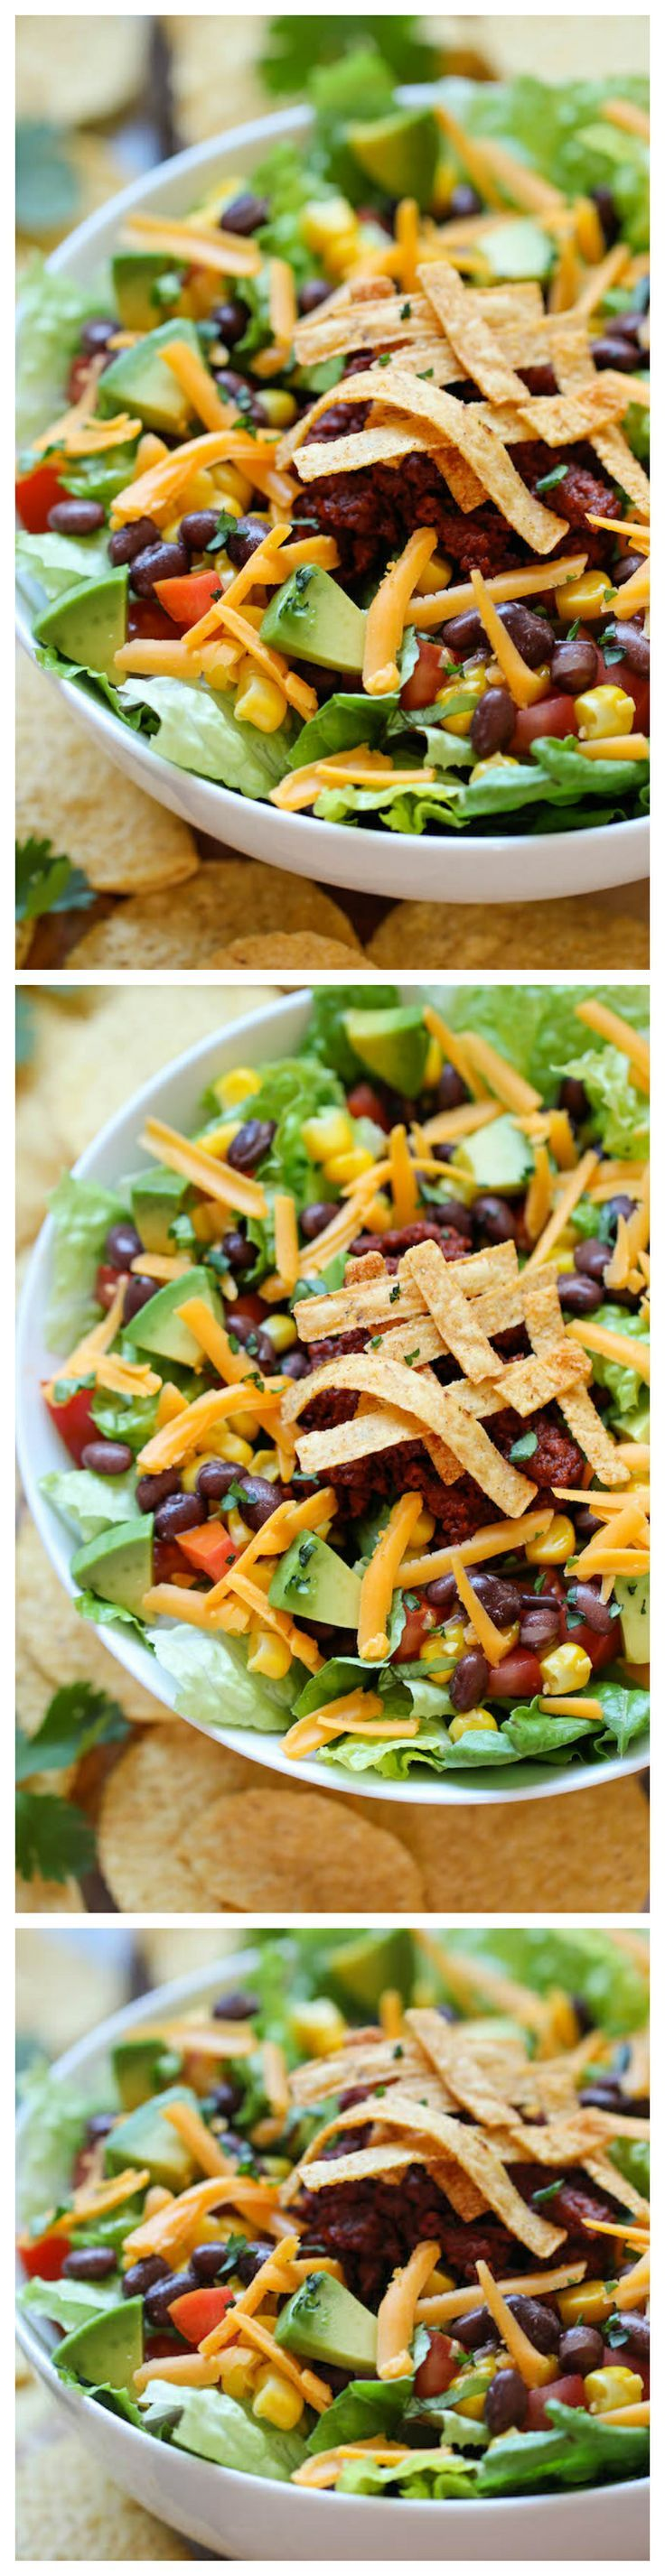 Taco Salad – Start the new year right with this healthy taco salad tossed in a refreshing, tangy lime vinaigrette!